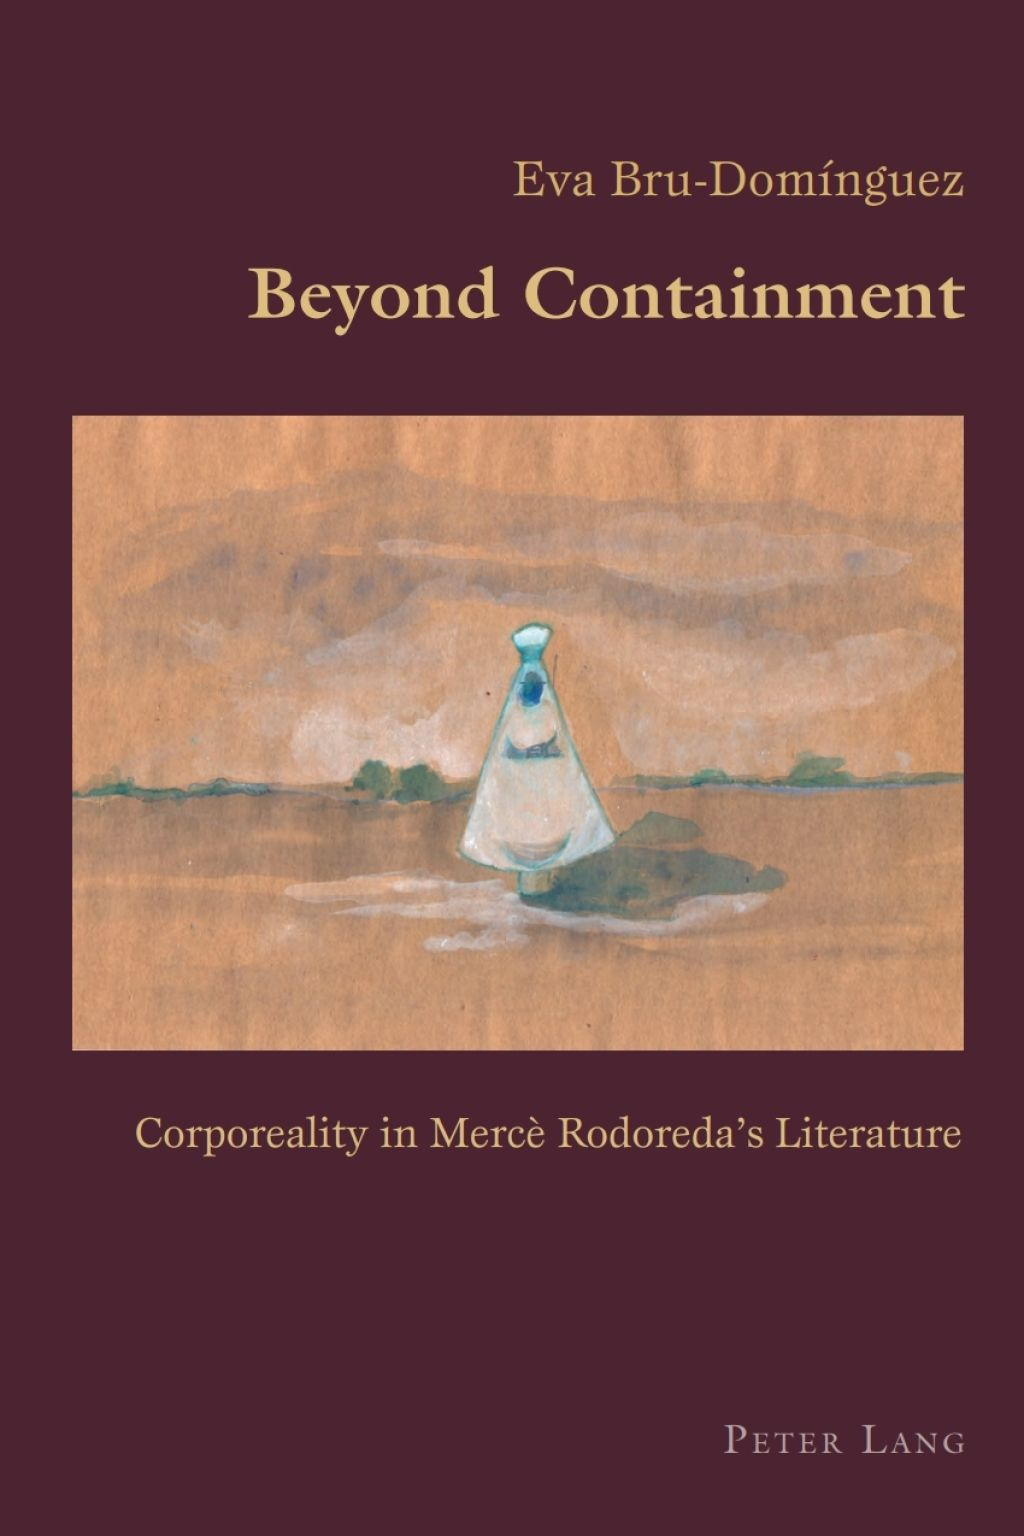 Beyond Containment Ebook In 2020 Free Ebooks Free Books Literature